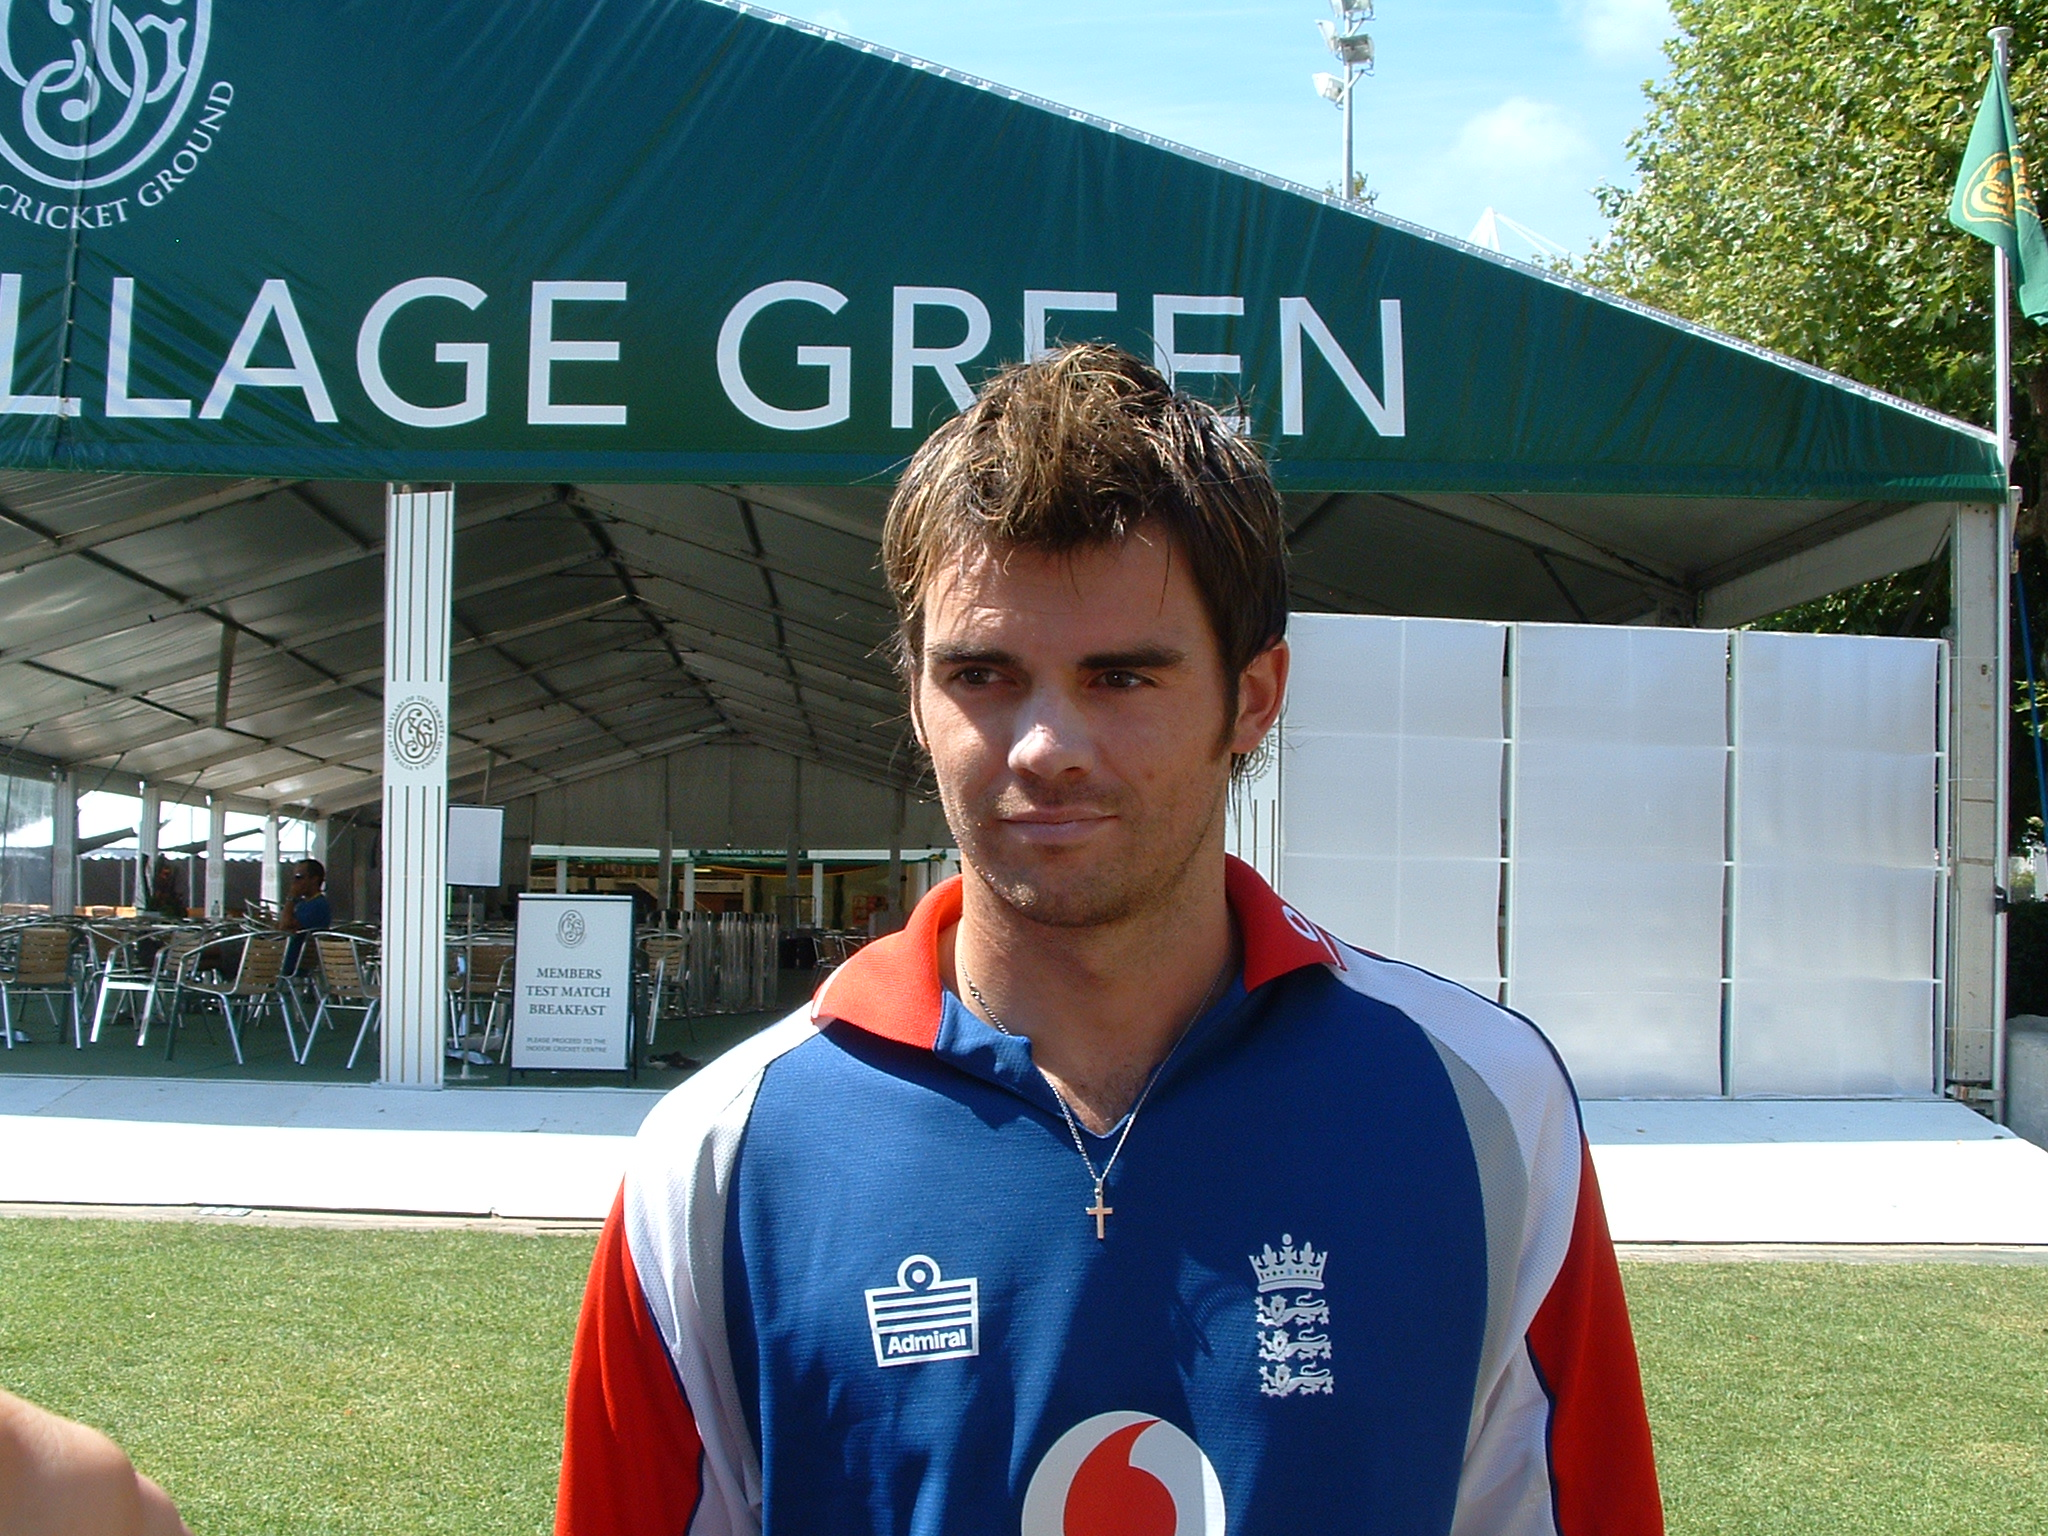 Where was James Anderson?